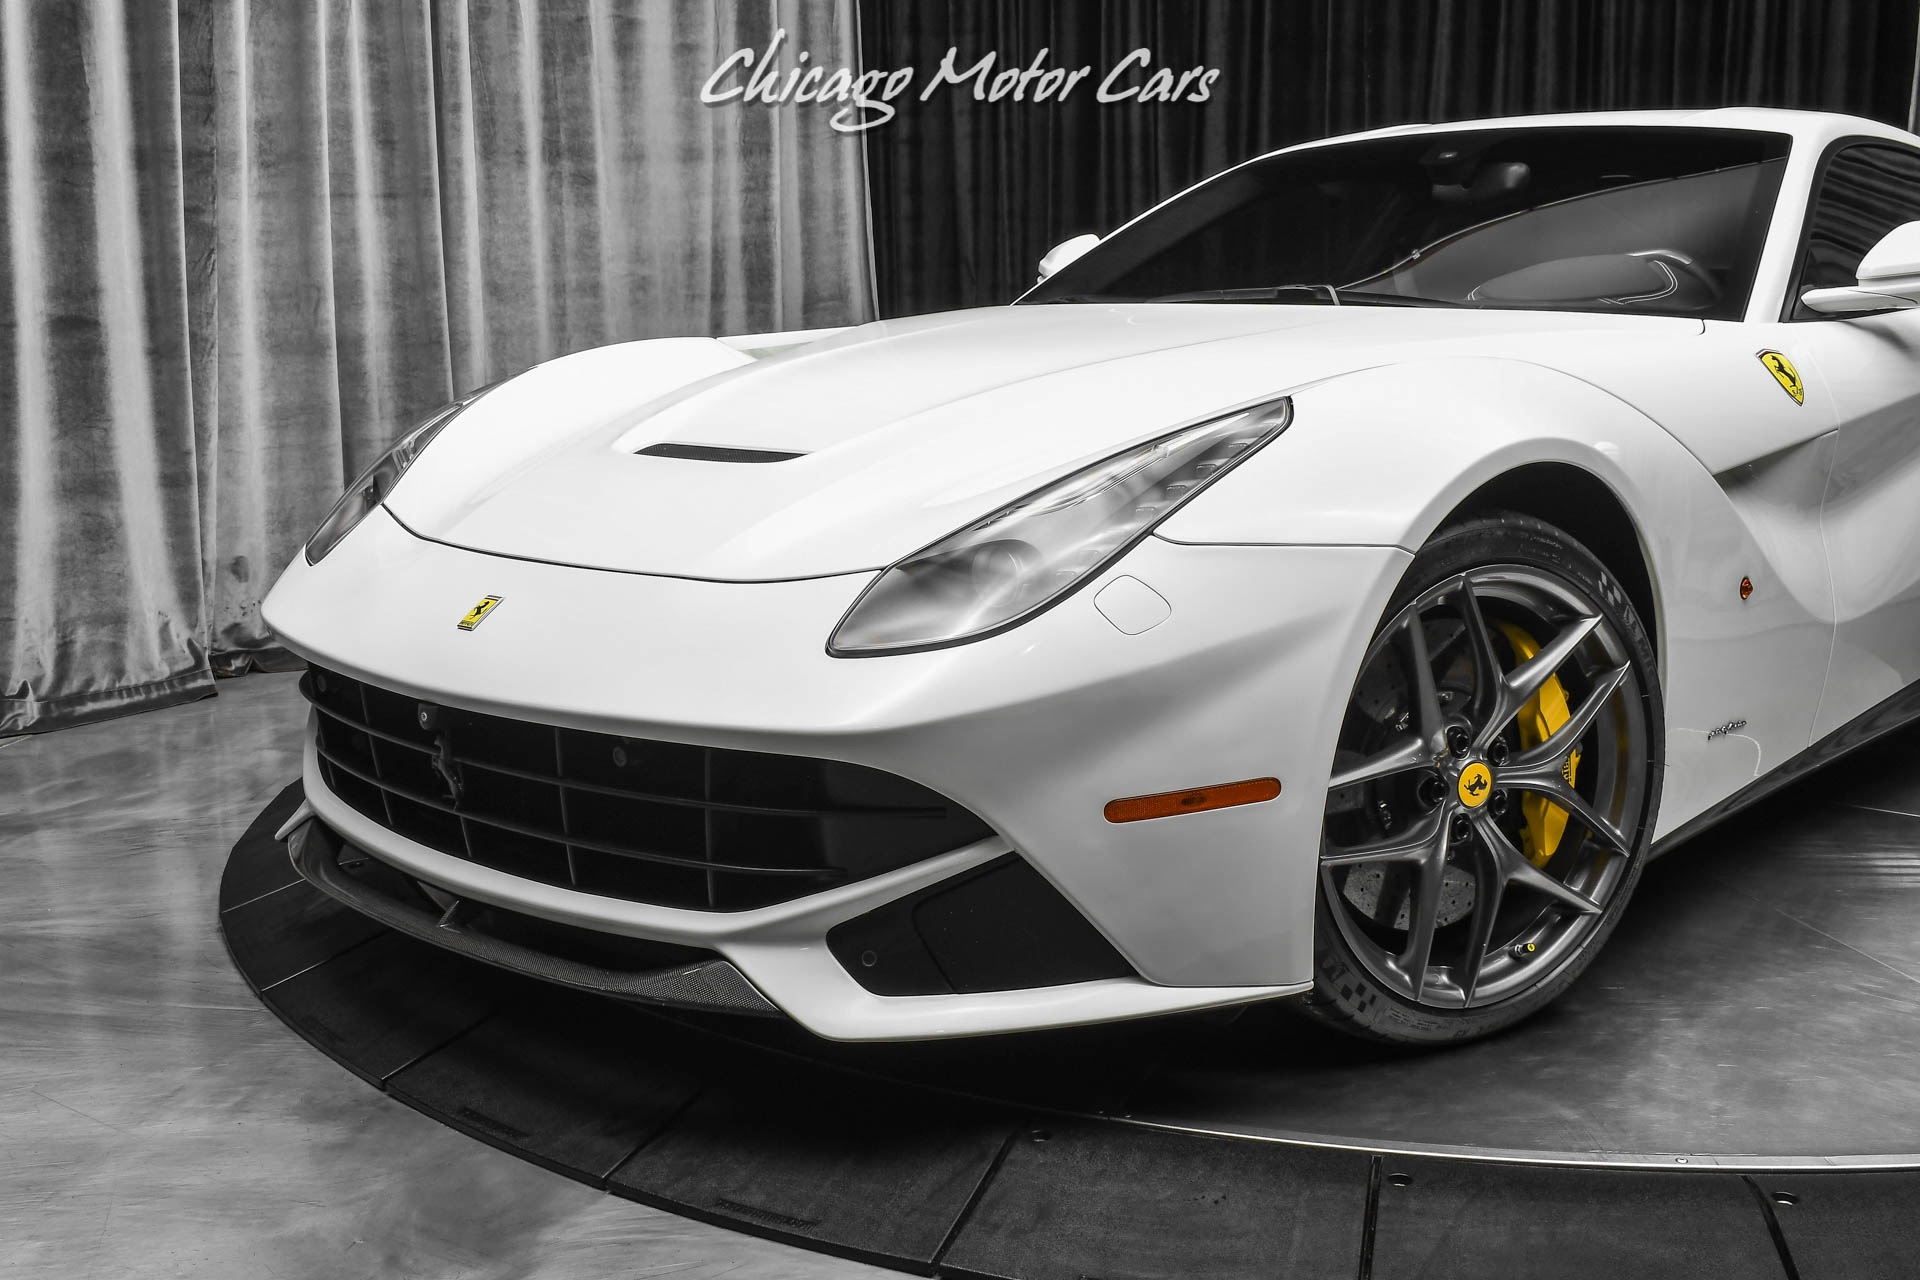 Used-2014-Ferrari-F12berlinetta-Coupe-Original-440K-MSRP-LOADED-WITH-125k-IN-OPTIONS-TONS-OF-CARBON